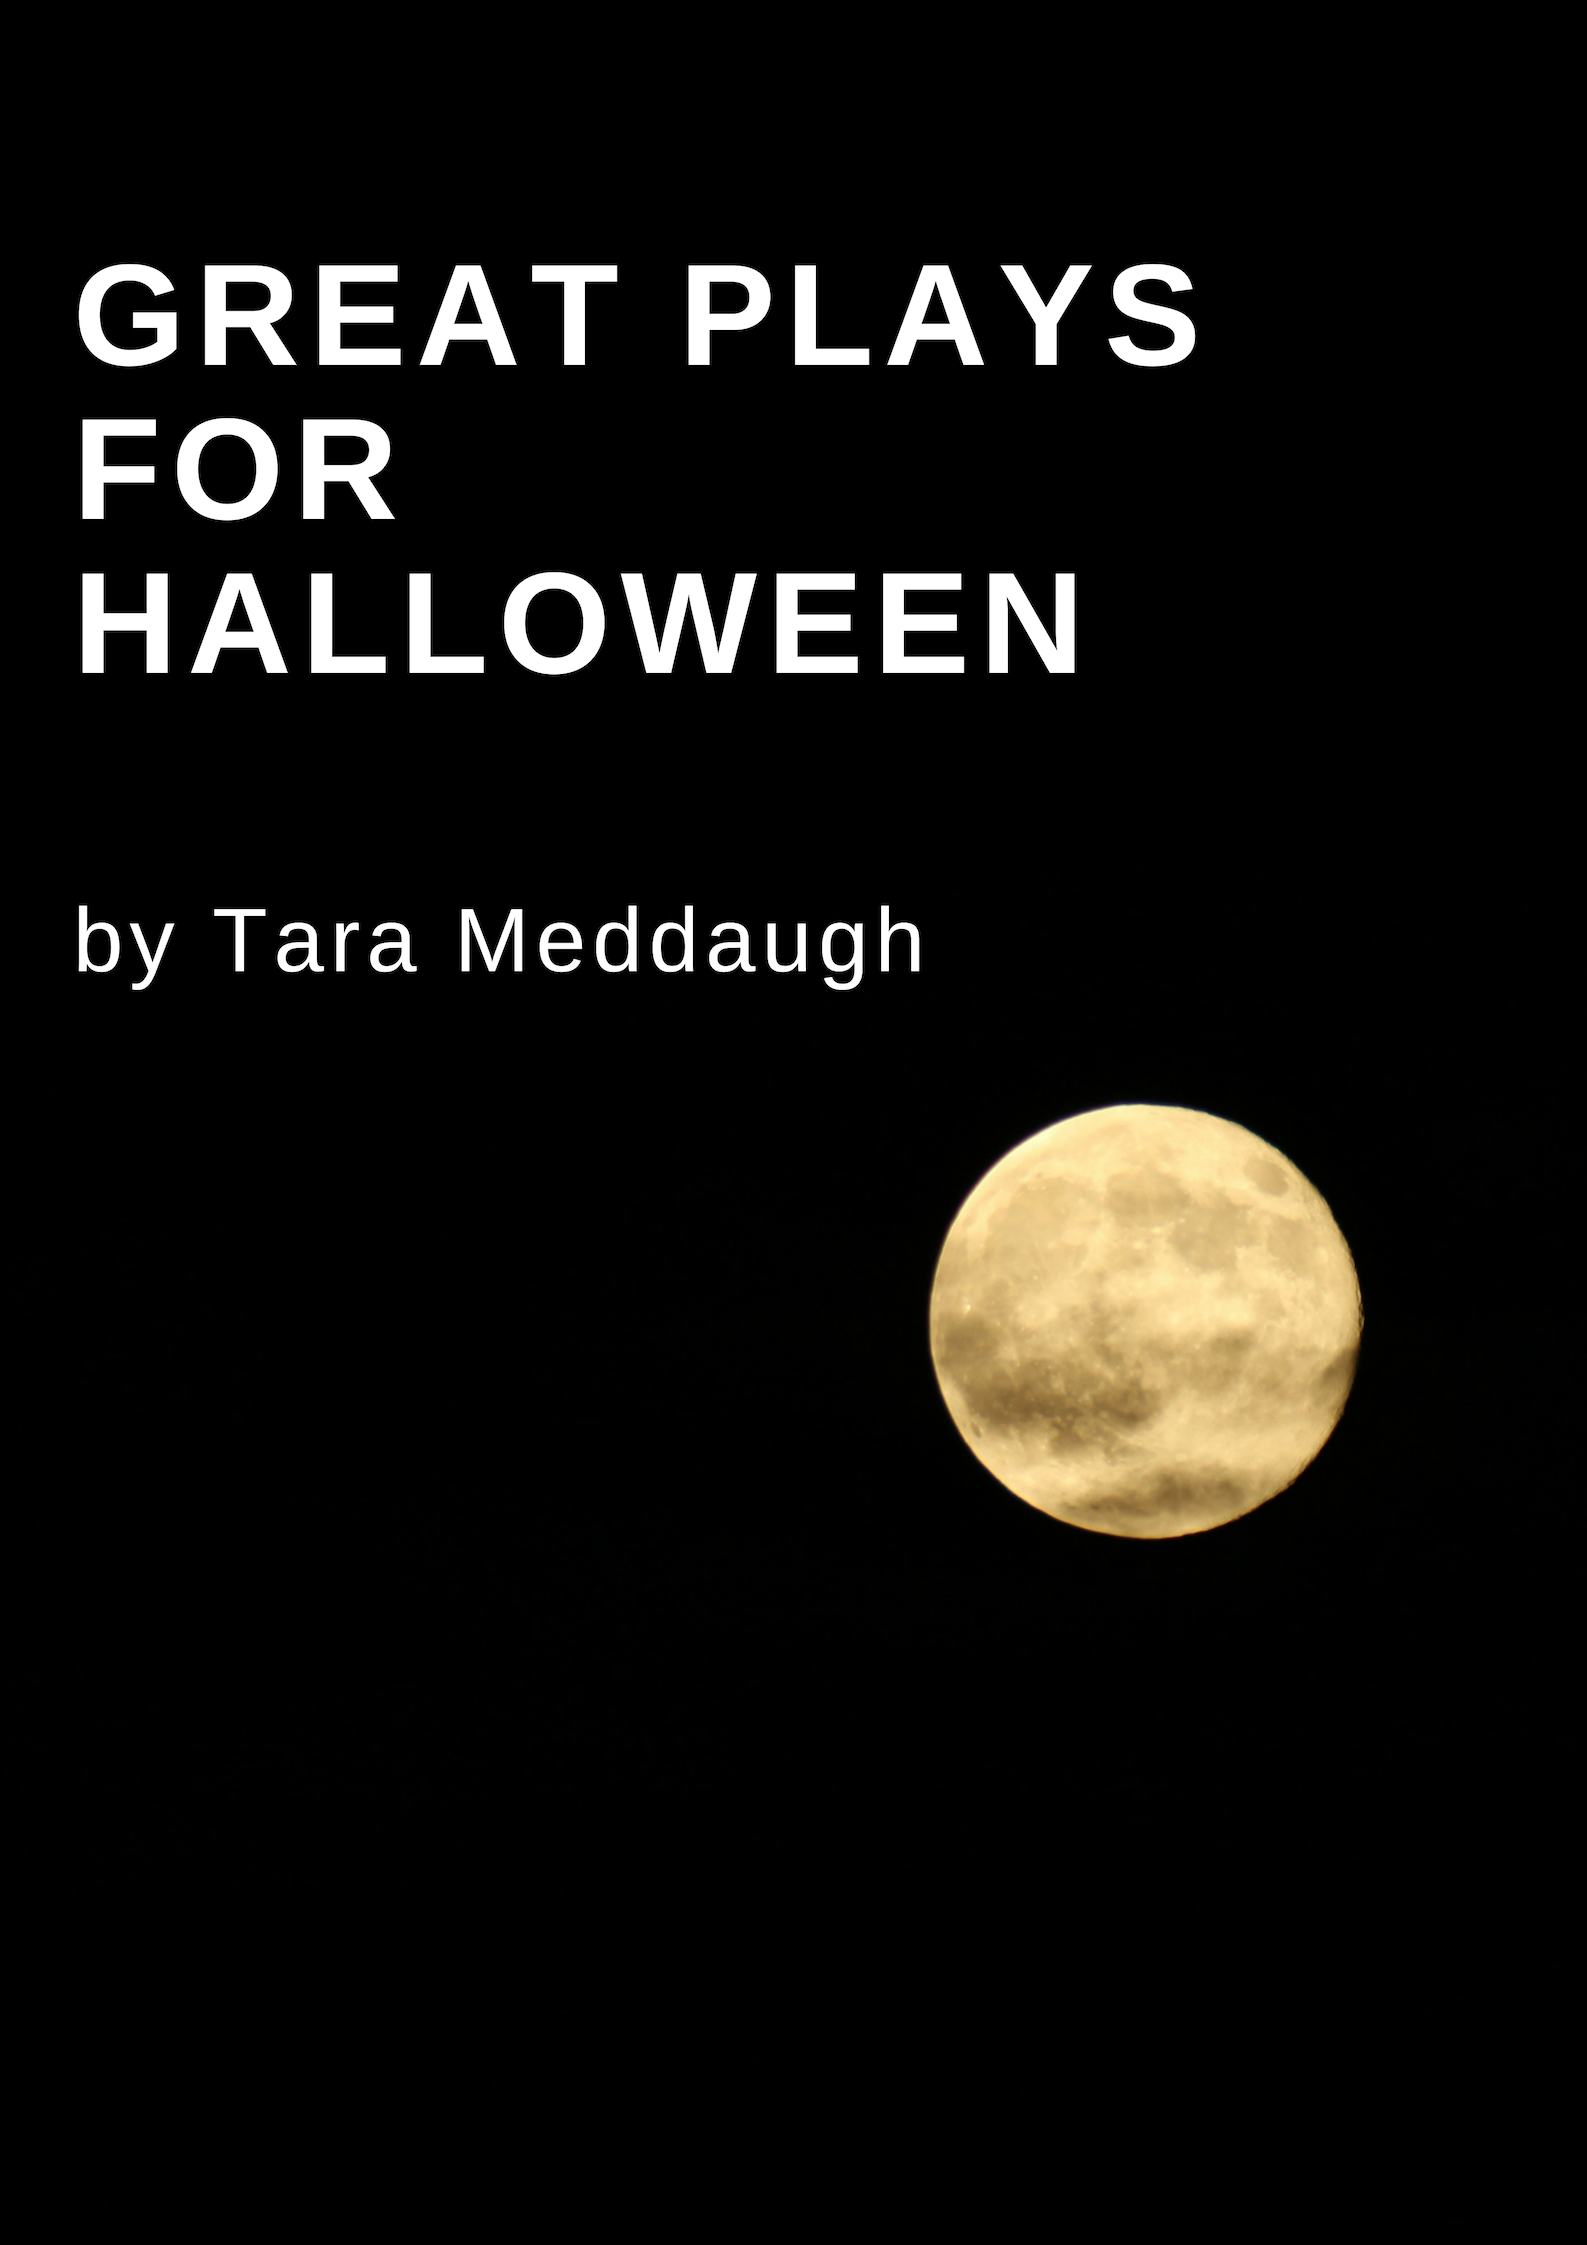 great plays for halloween.jpg